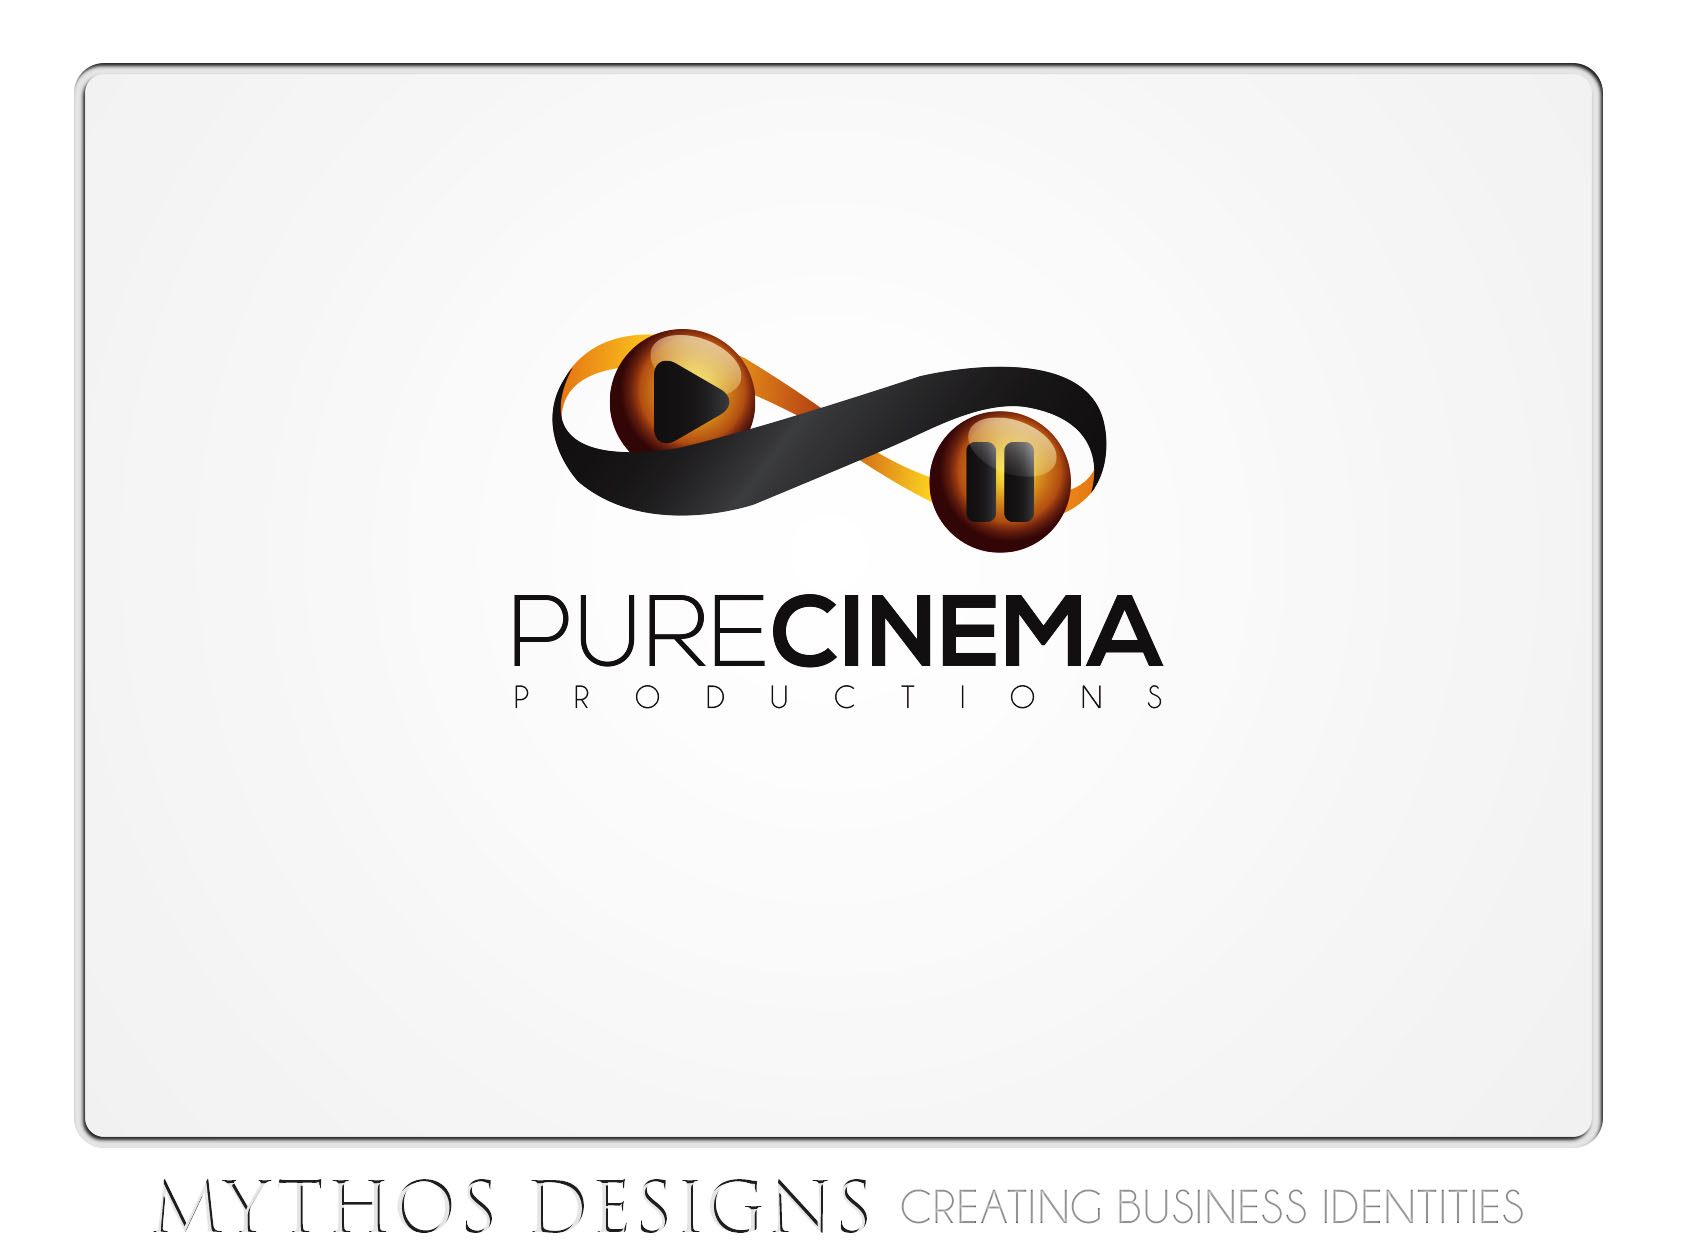 Logo Design by Mythos Designs - Entry No. 51 in the Logo Design Contest Imaginative Logo Design for Pure Cinema.